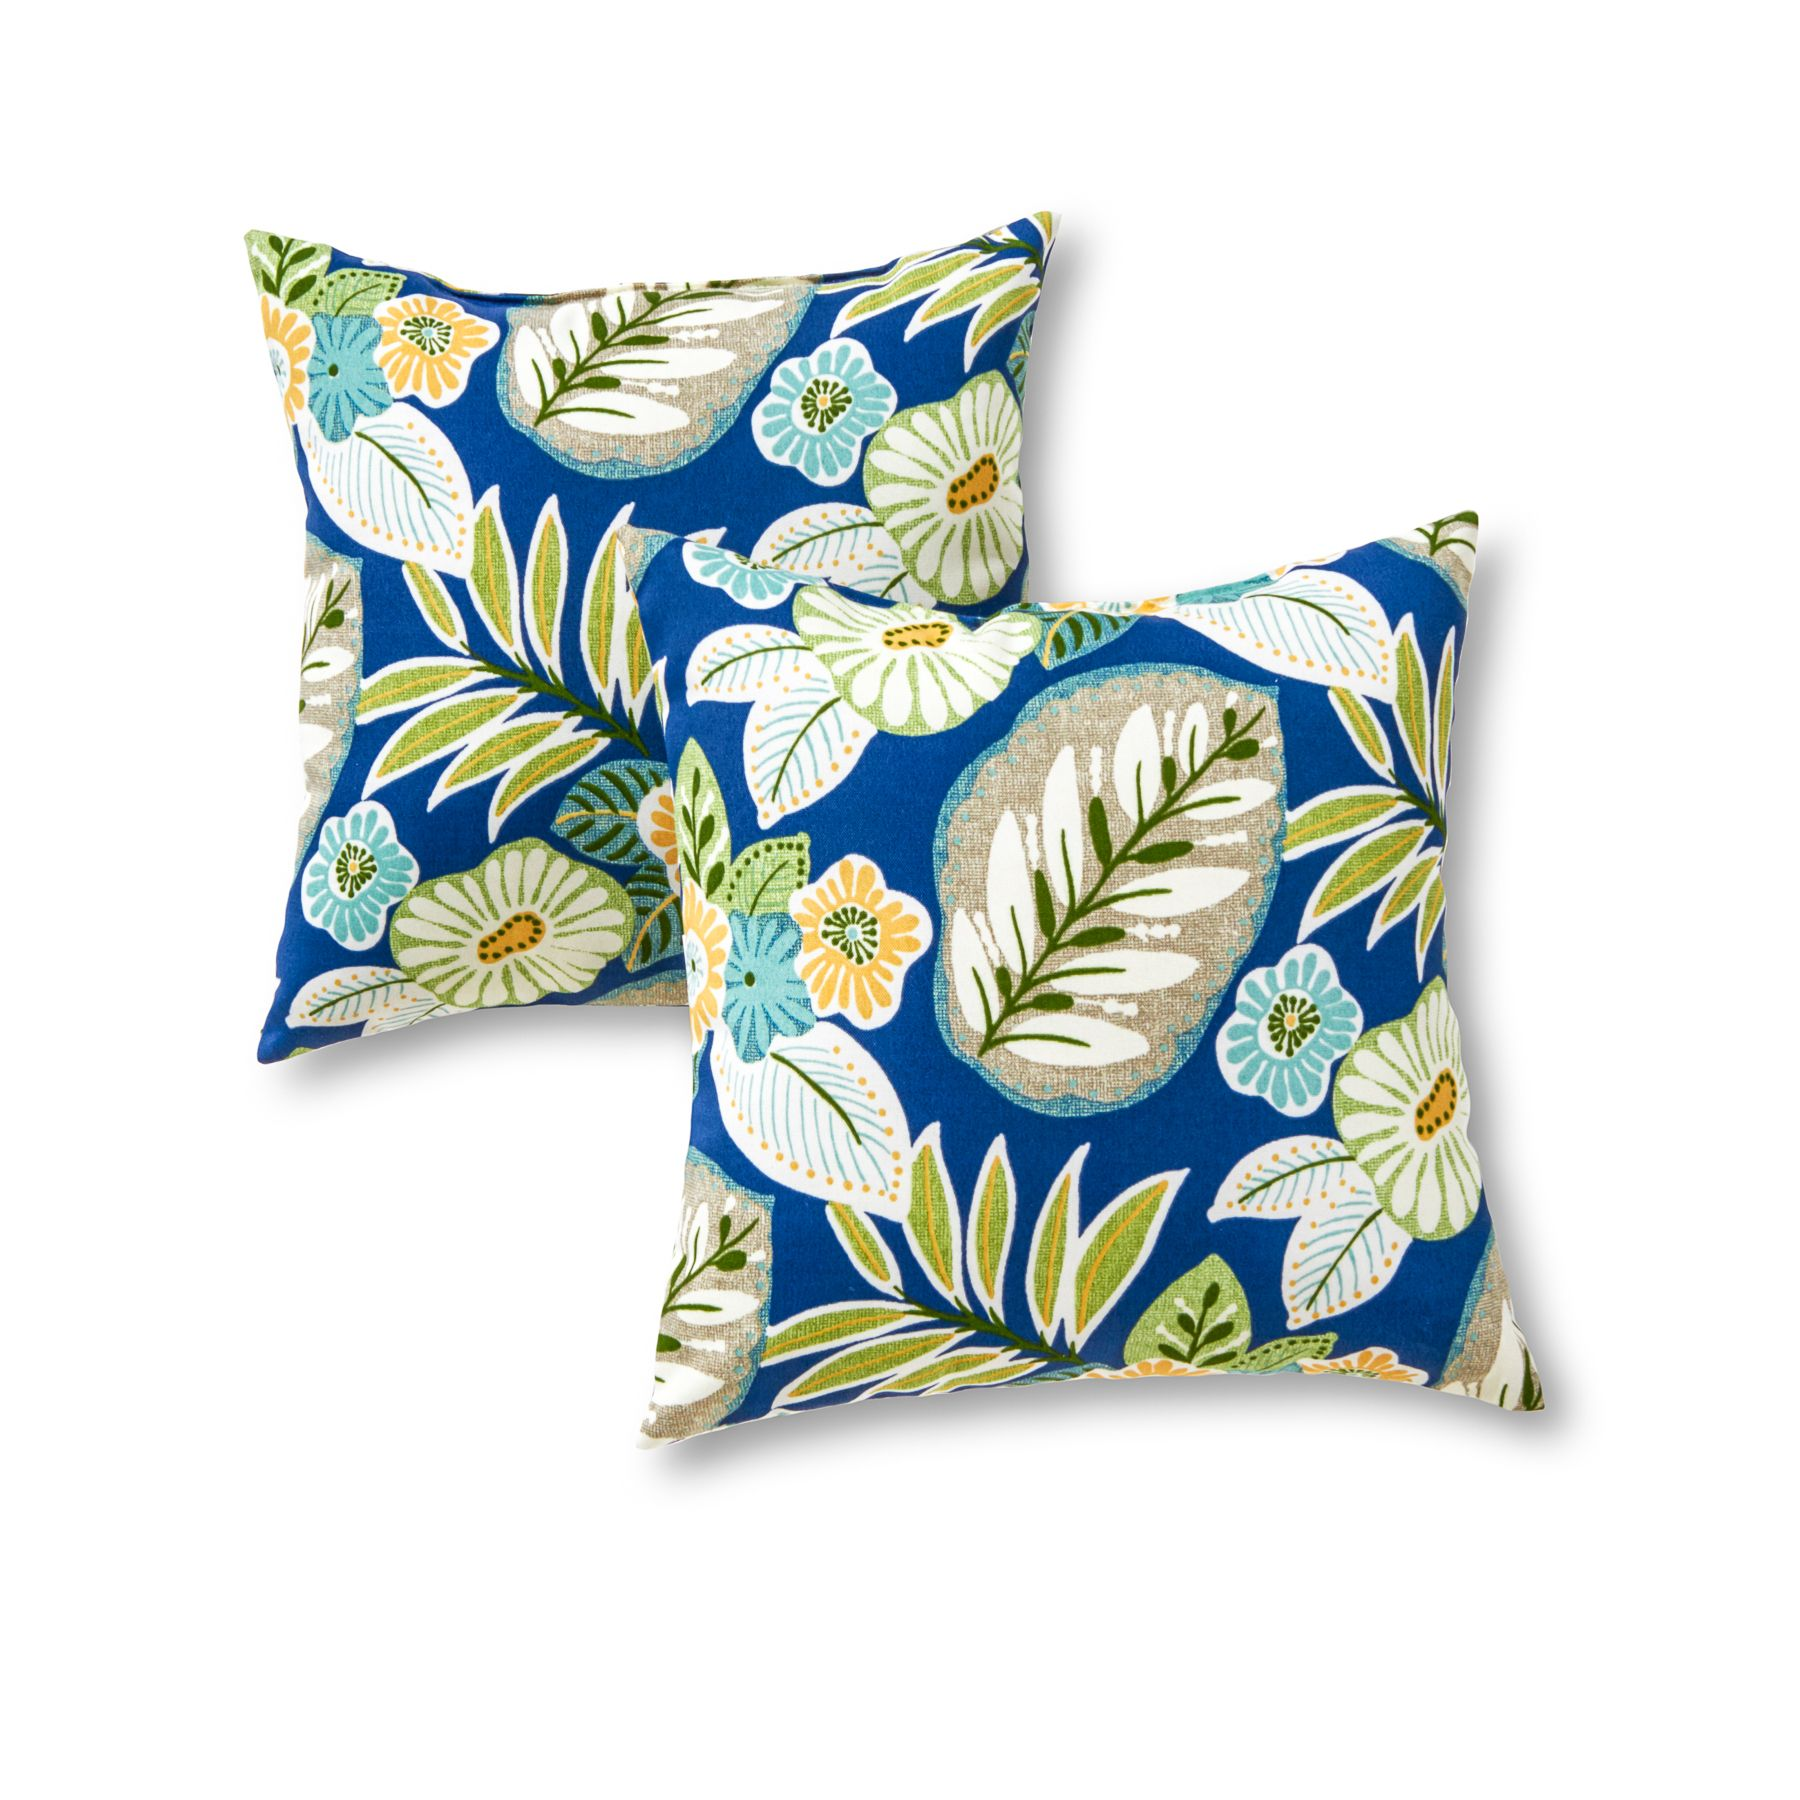 Greendale Home Fashions Outdoor Accent Pillows 2 Pk Marlow Blue